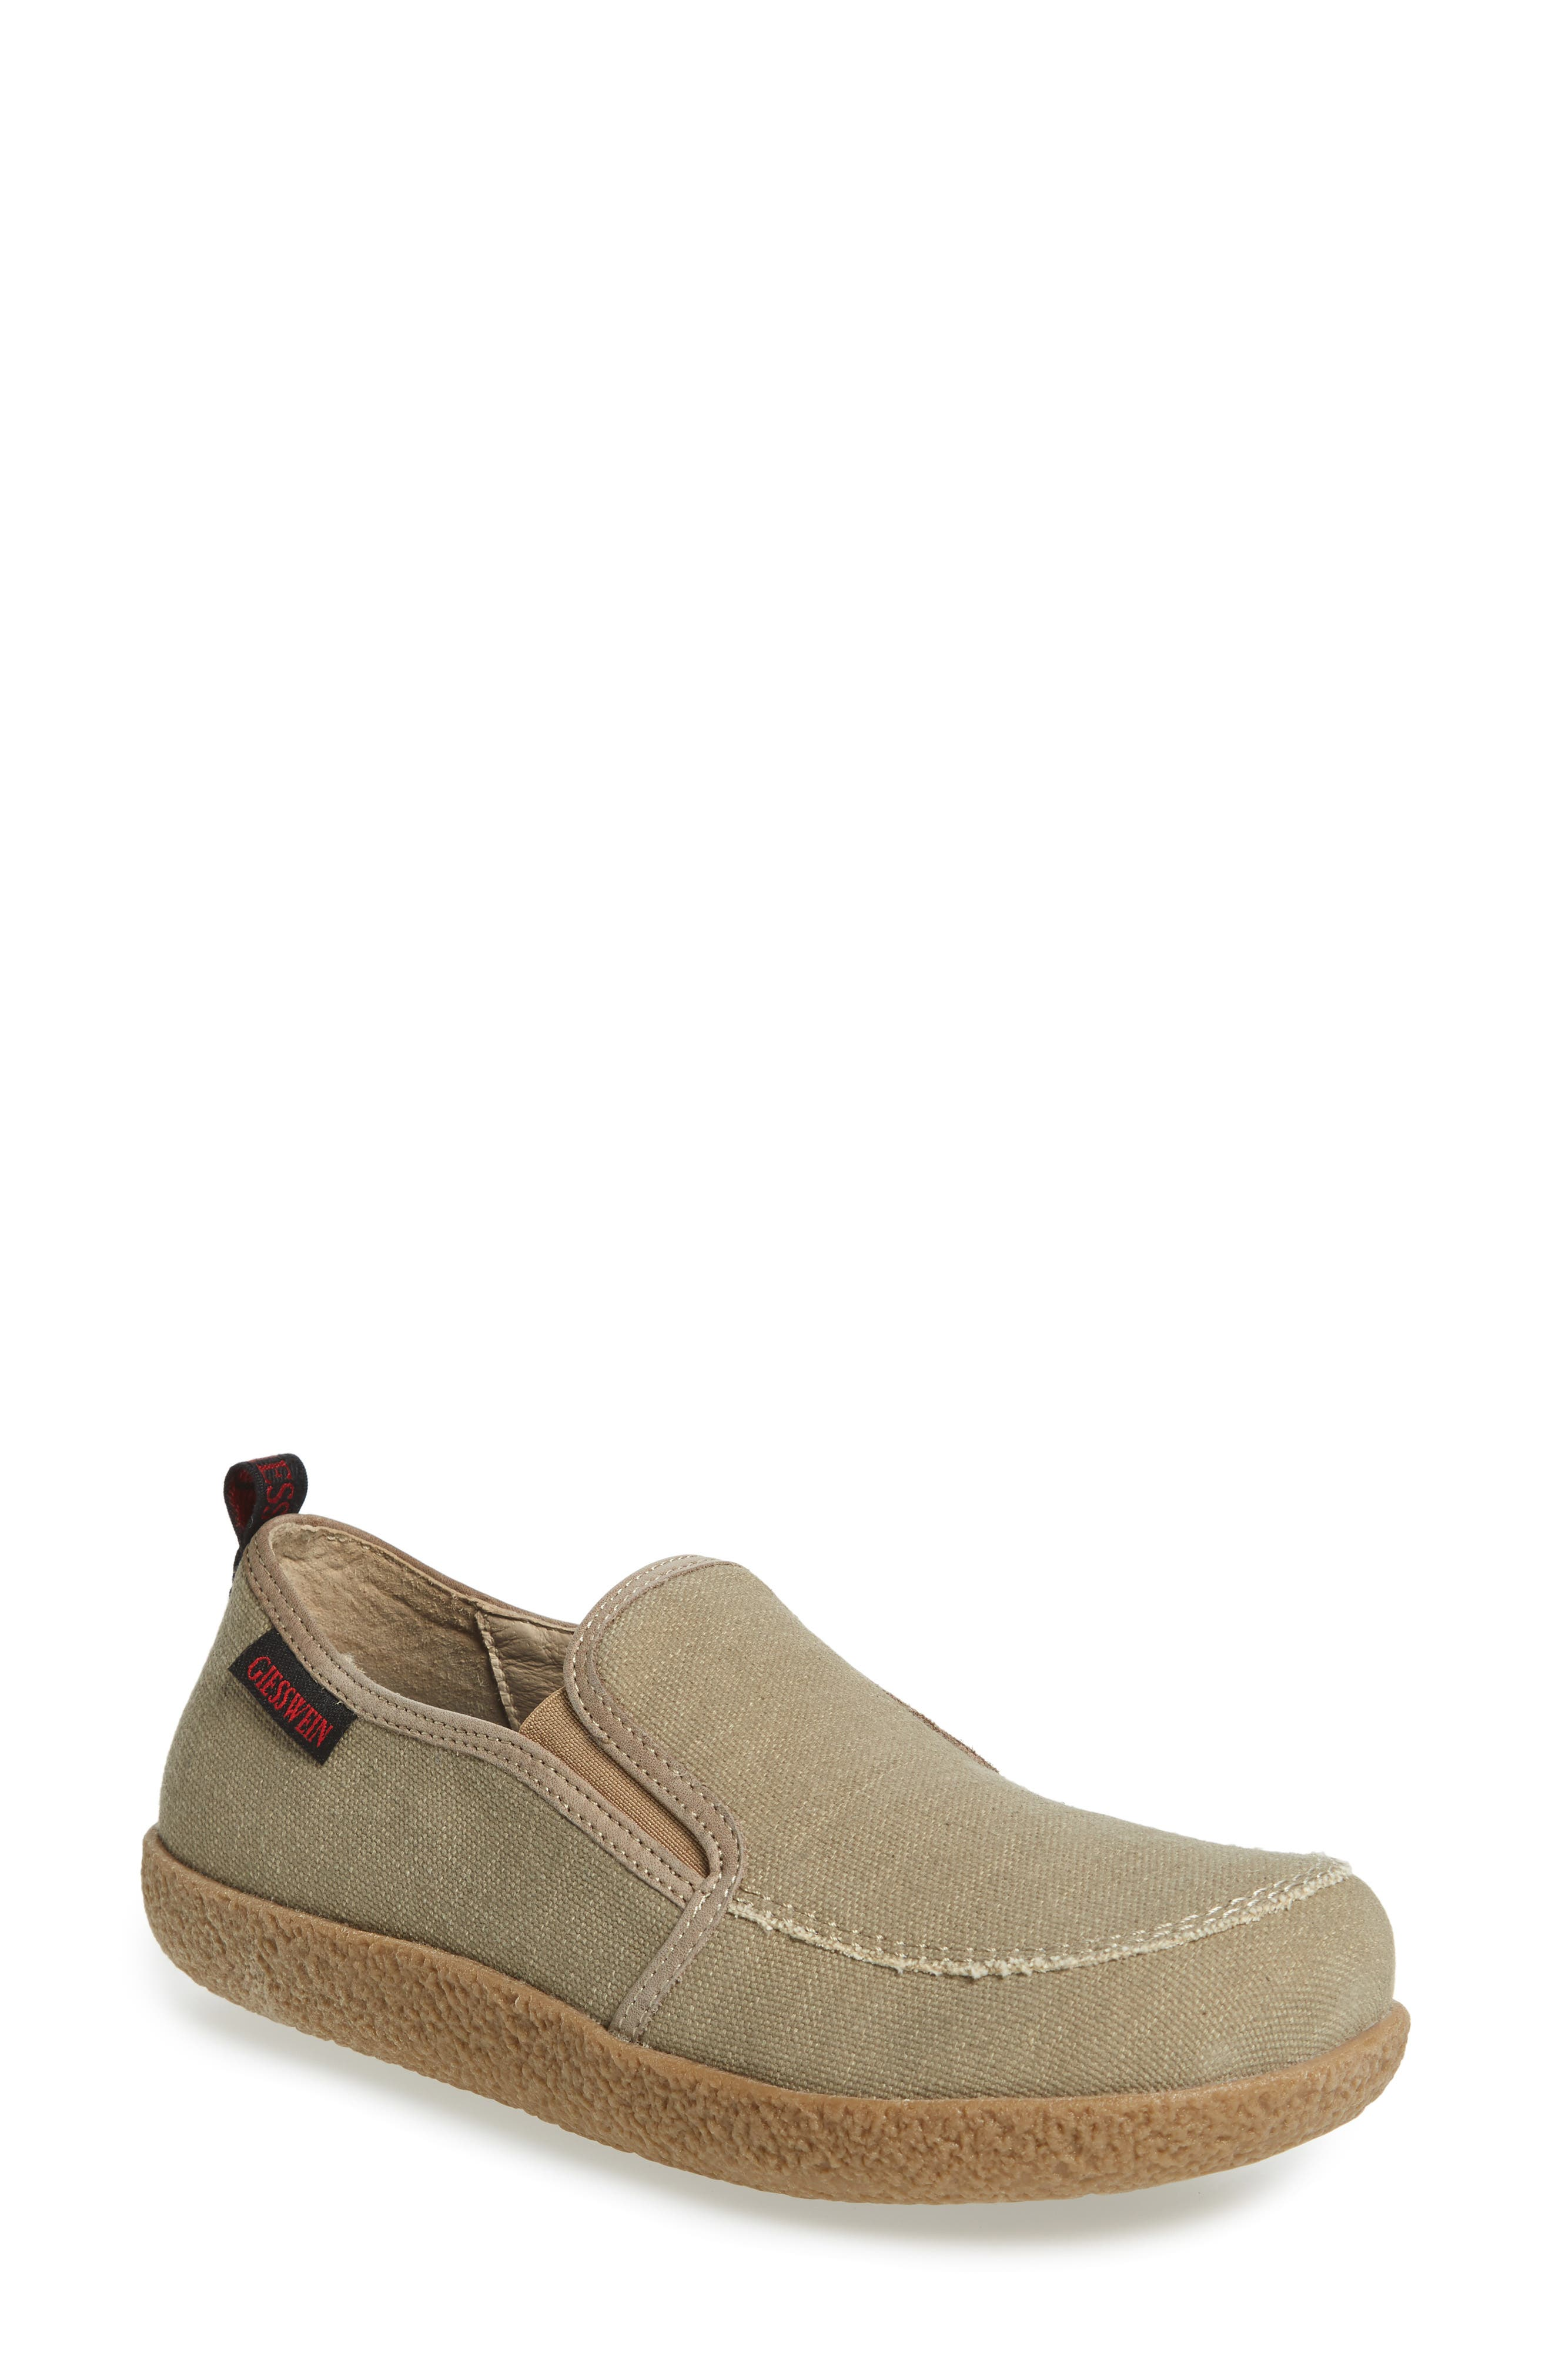 Reith Loafer,                         Main,                         color, 250